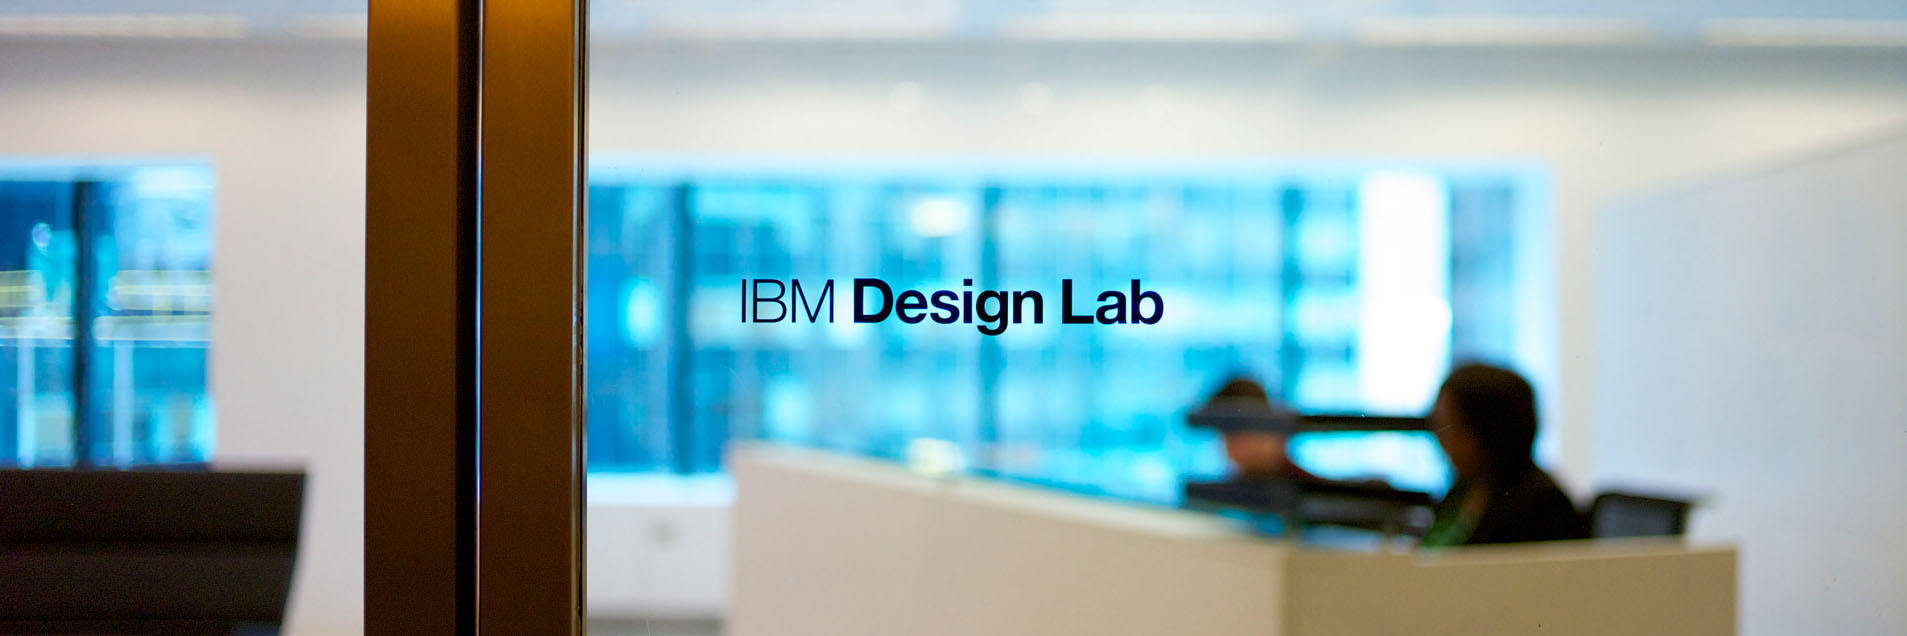 IBM Design Lab | Kevin Chiu